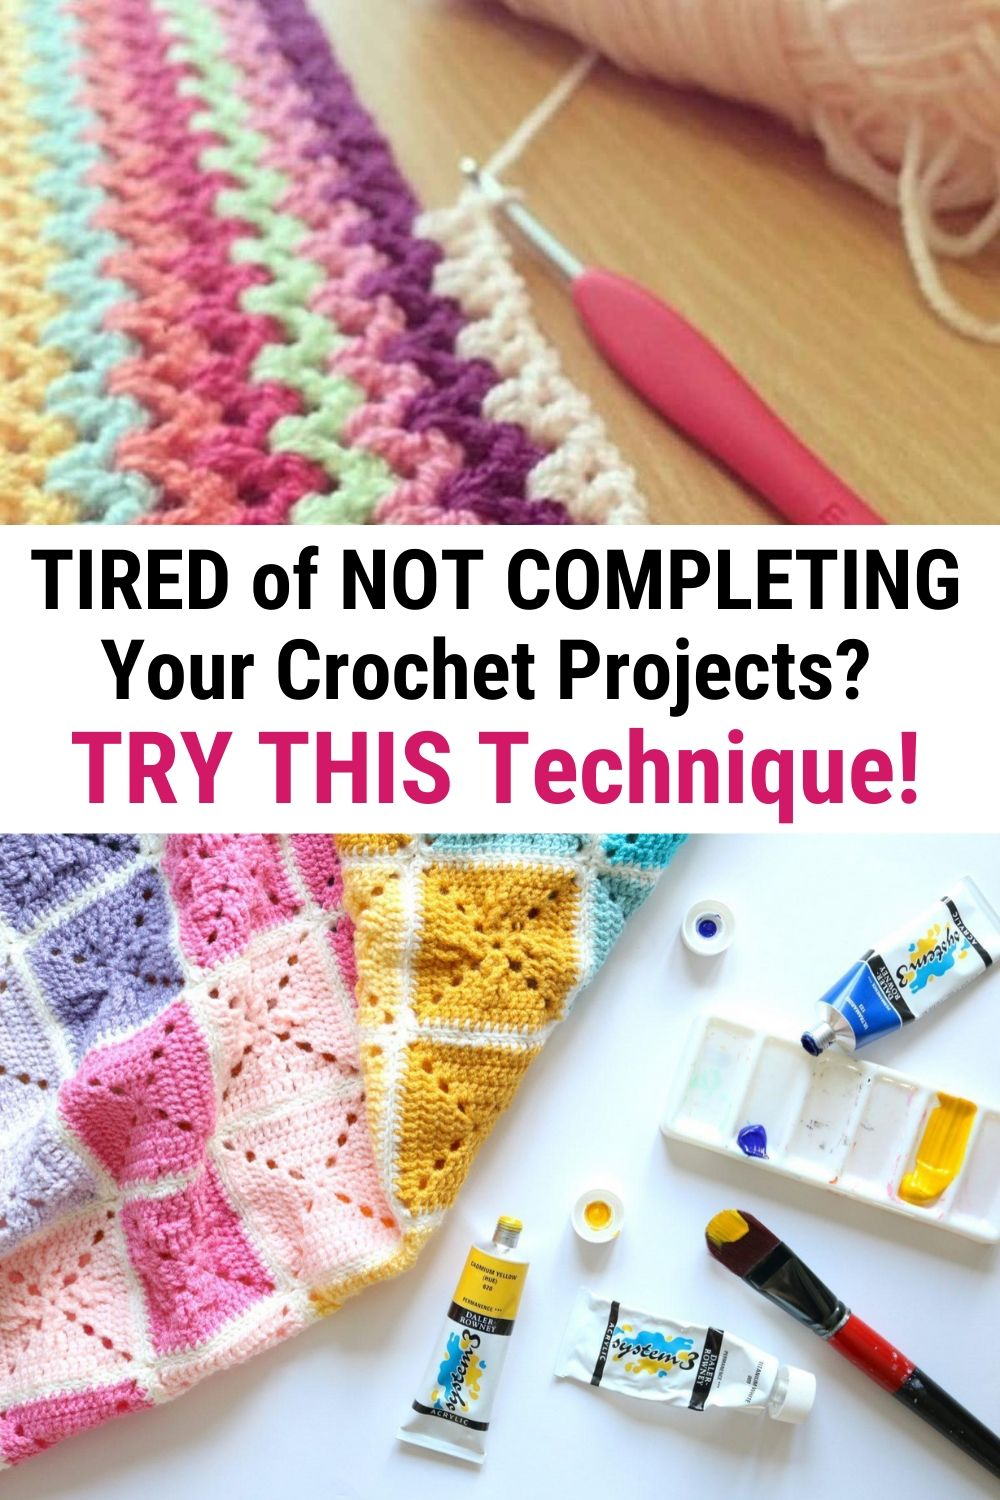 TIRED of NOT COMPLETING Your Crochet Projects_ TRY THIS Technique!